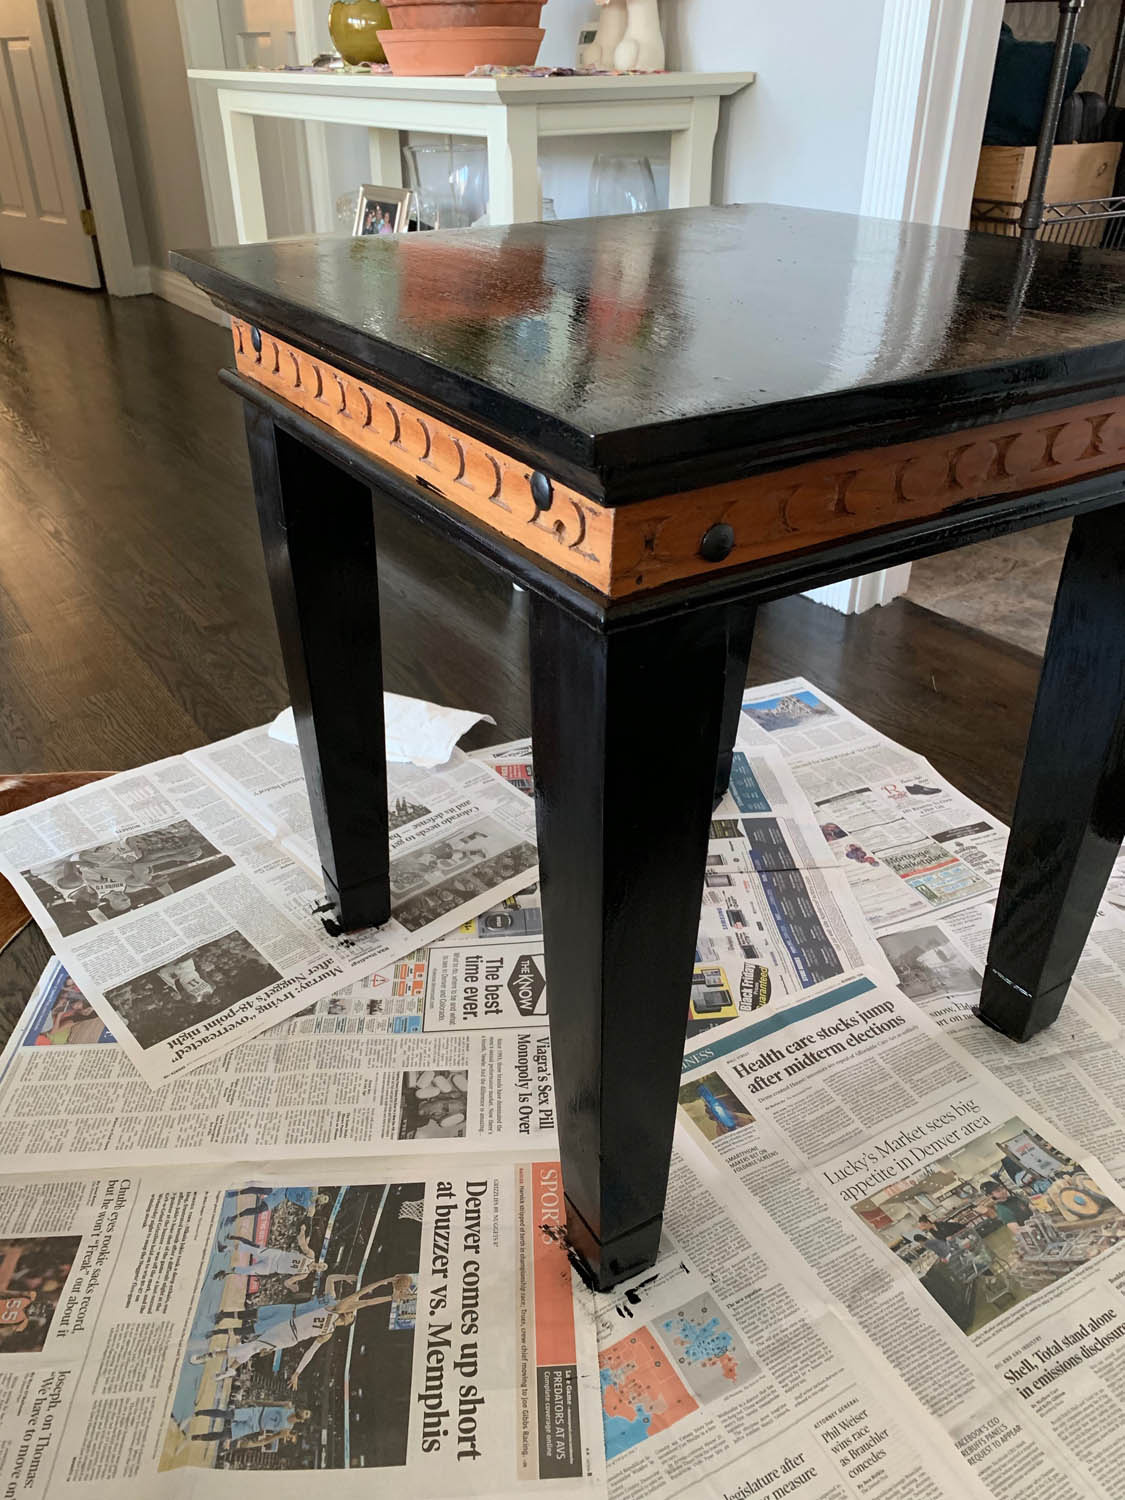 end table on newspapers with homemade chalk paint almost covering the table